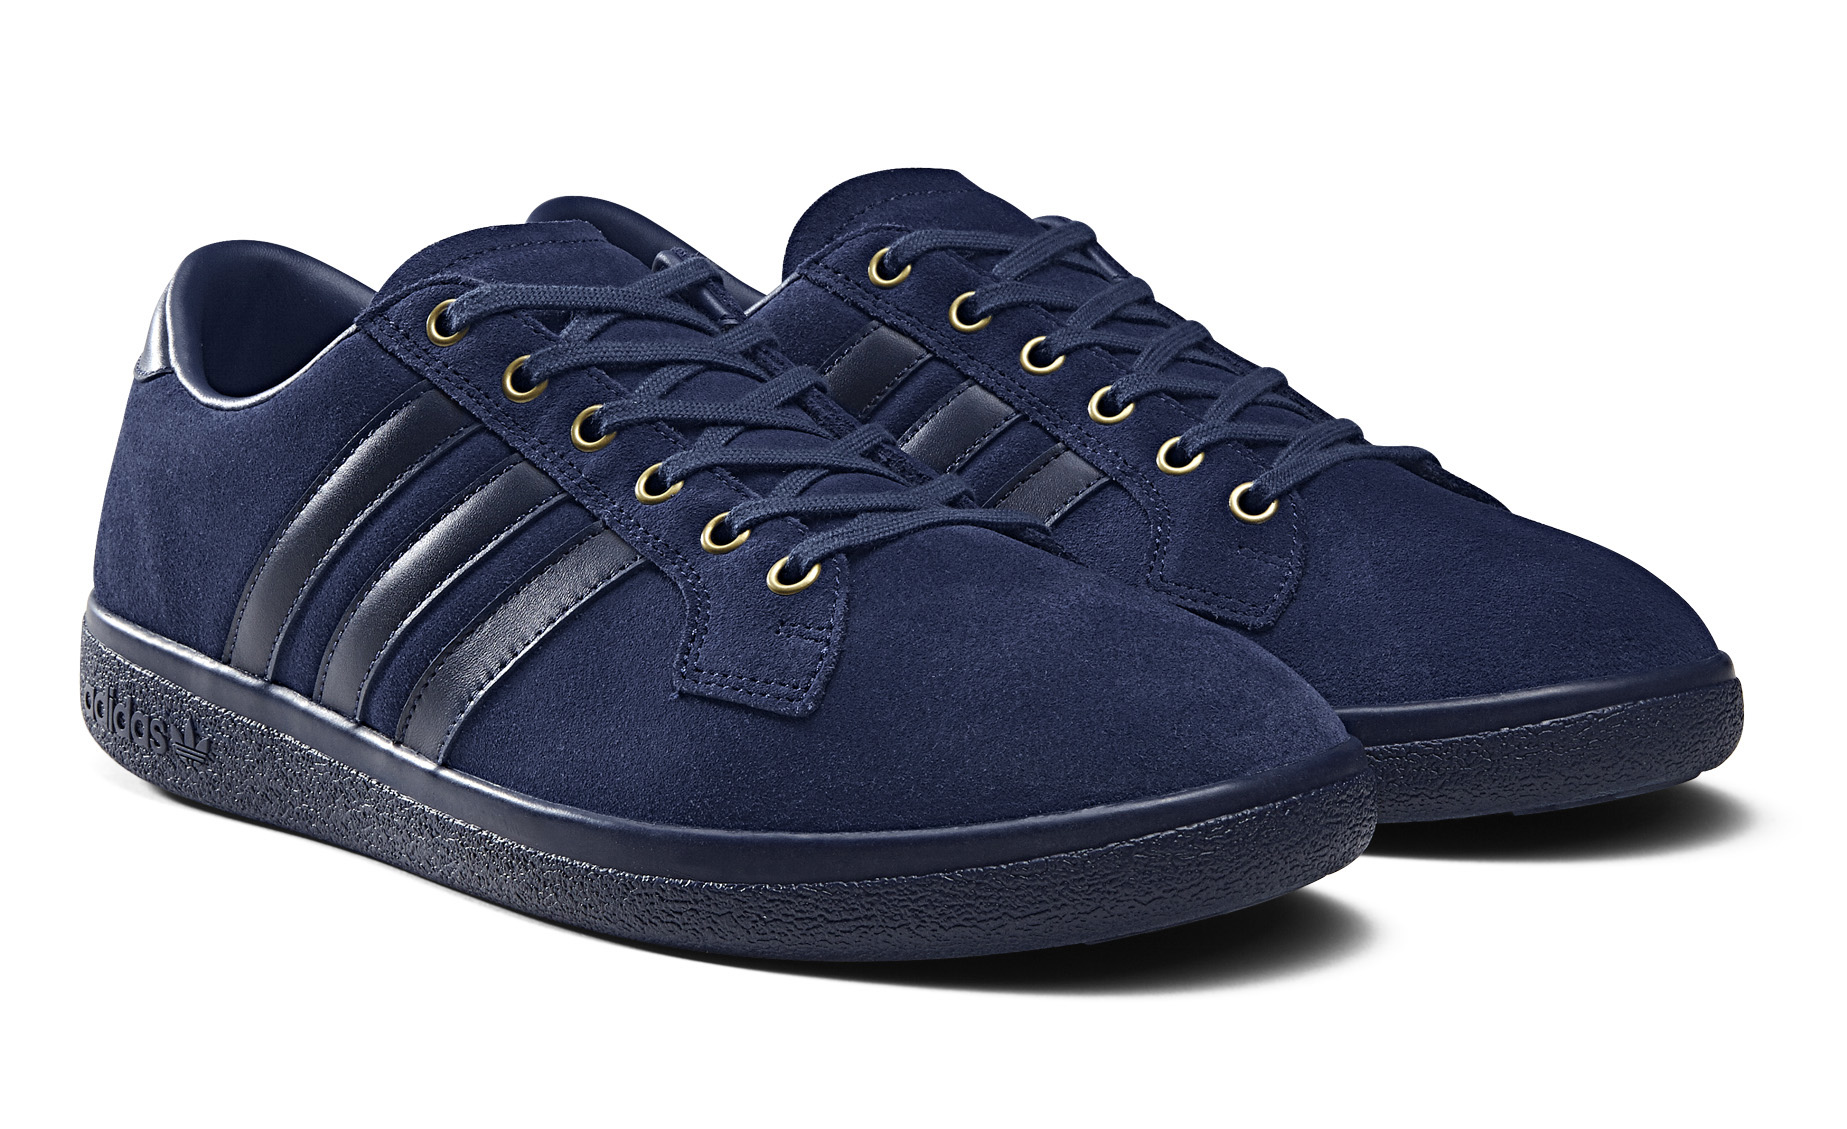 adidas-spezial-collection-fall-winter-2016-09